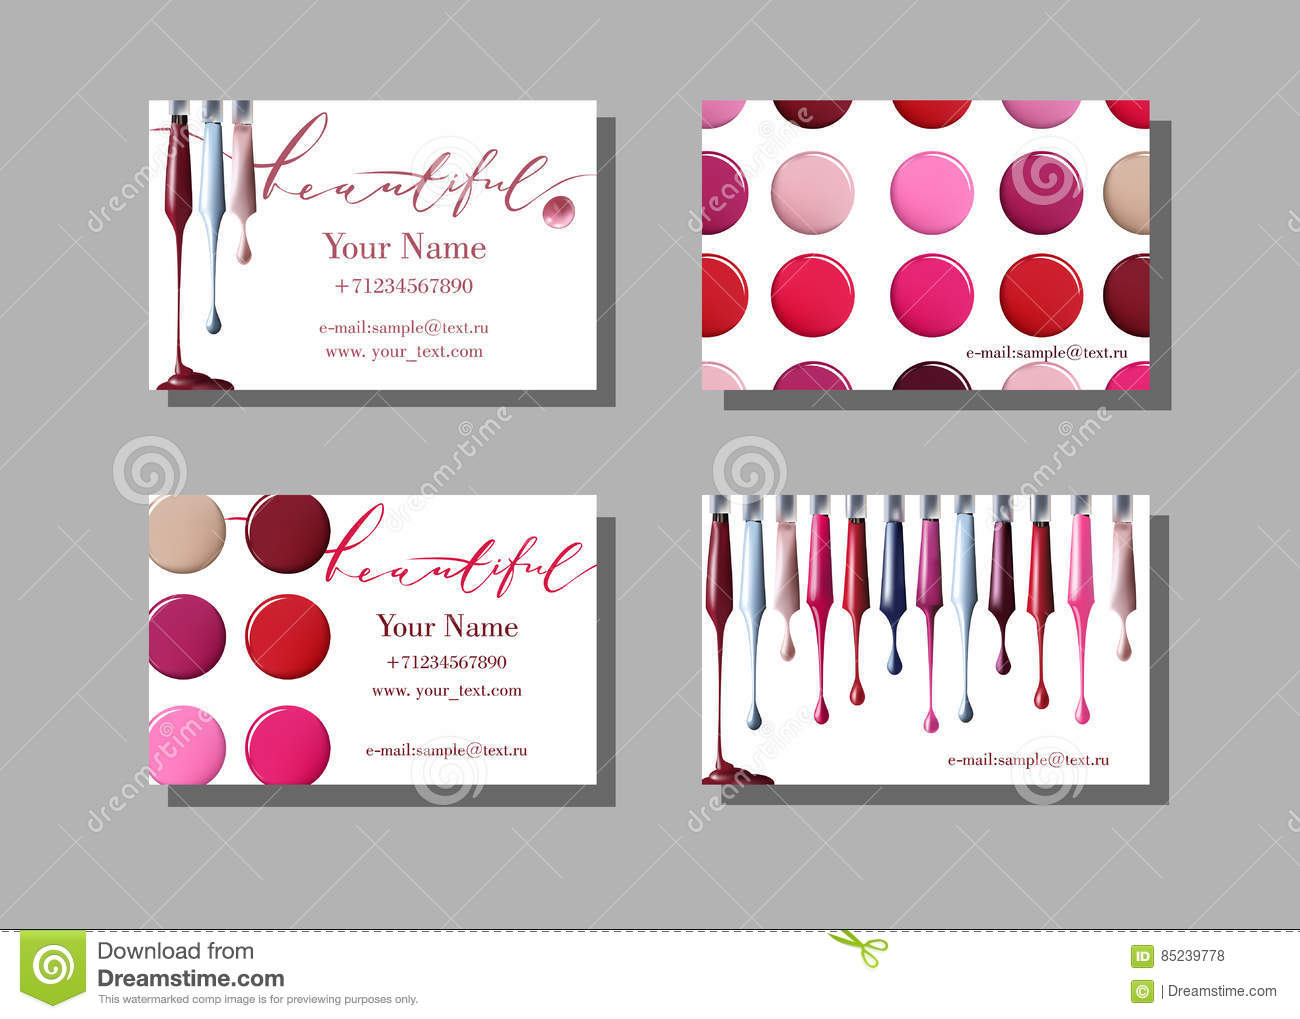 Makeup Artist Business Card Vector Template With Items Pattern Nail Polish Royalty Free Stock Image